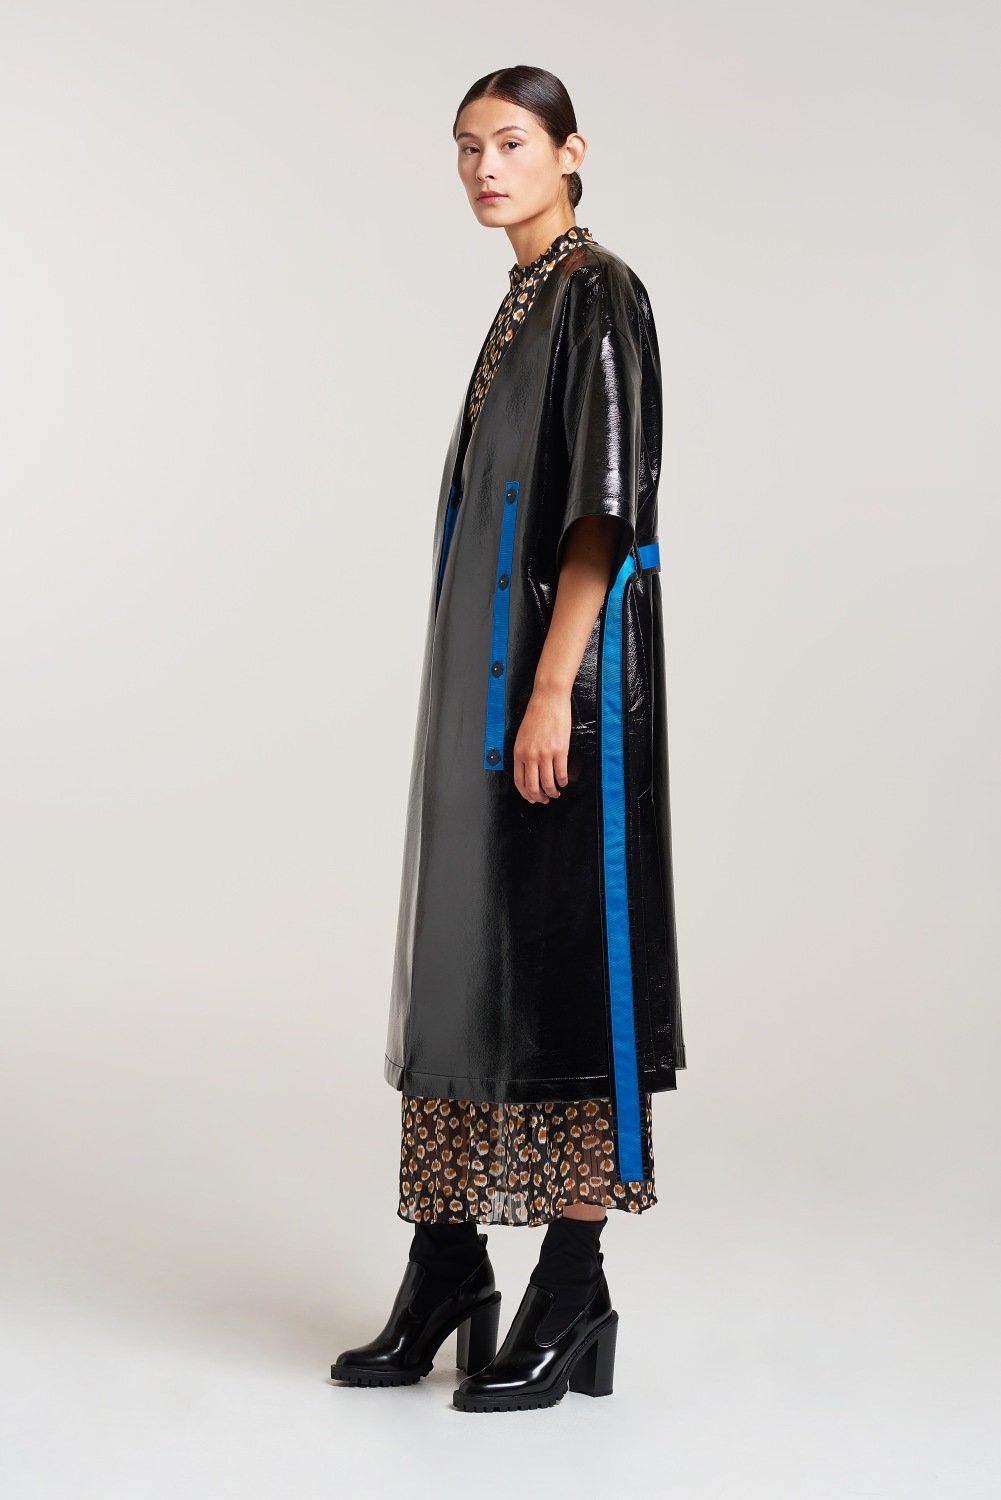 Palones Black Kim-Mono PU Dress Coat